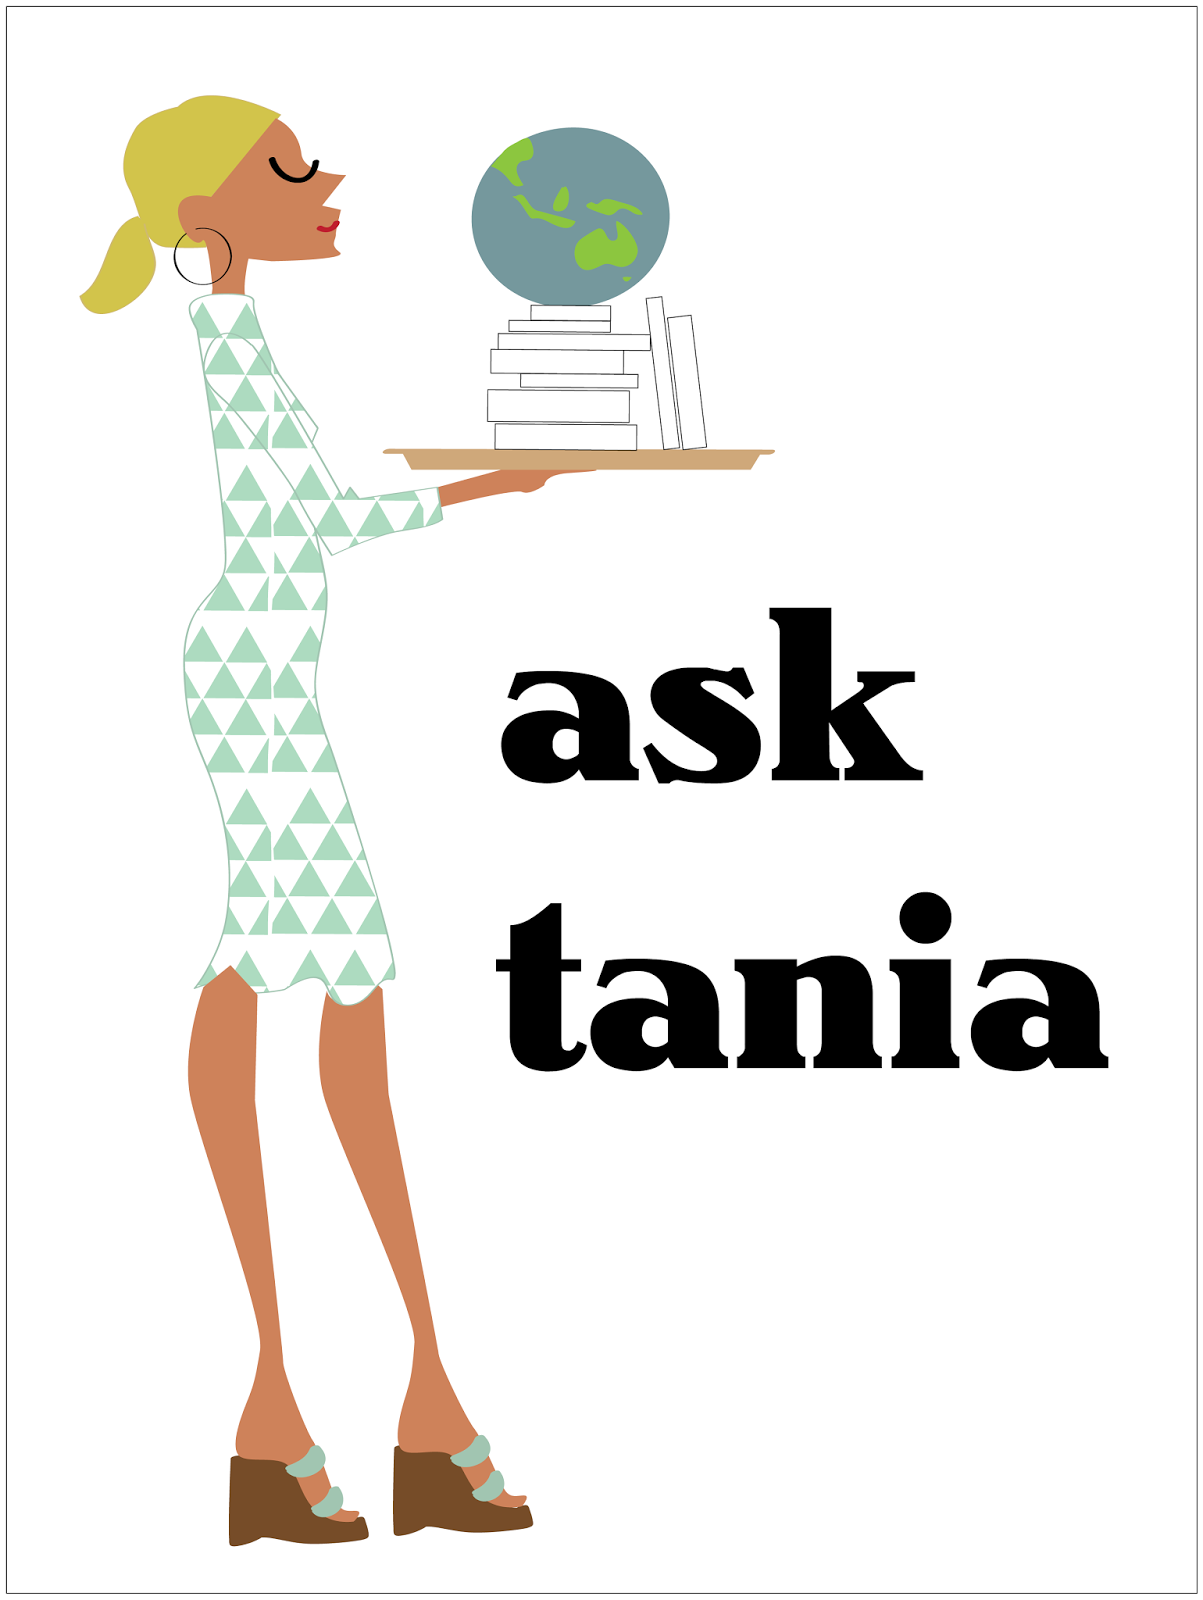 Ask Tania My Ask Tania column is for people to ask any kind of question on writing, editing, publishing, book marketing, blogging or any other literary topic. And if I can't answer the question, I'm sure I can point you in the direction of someone who can!